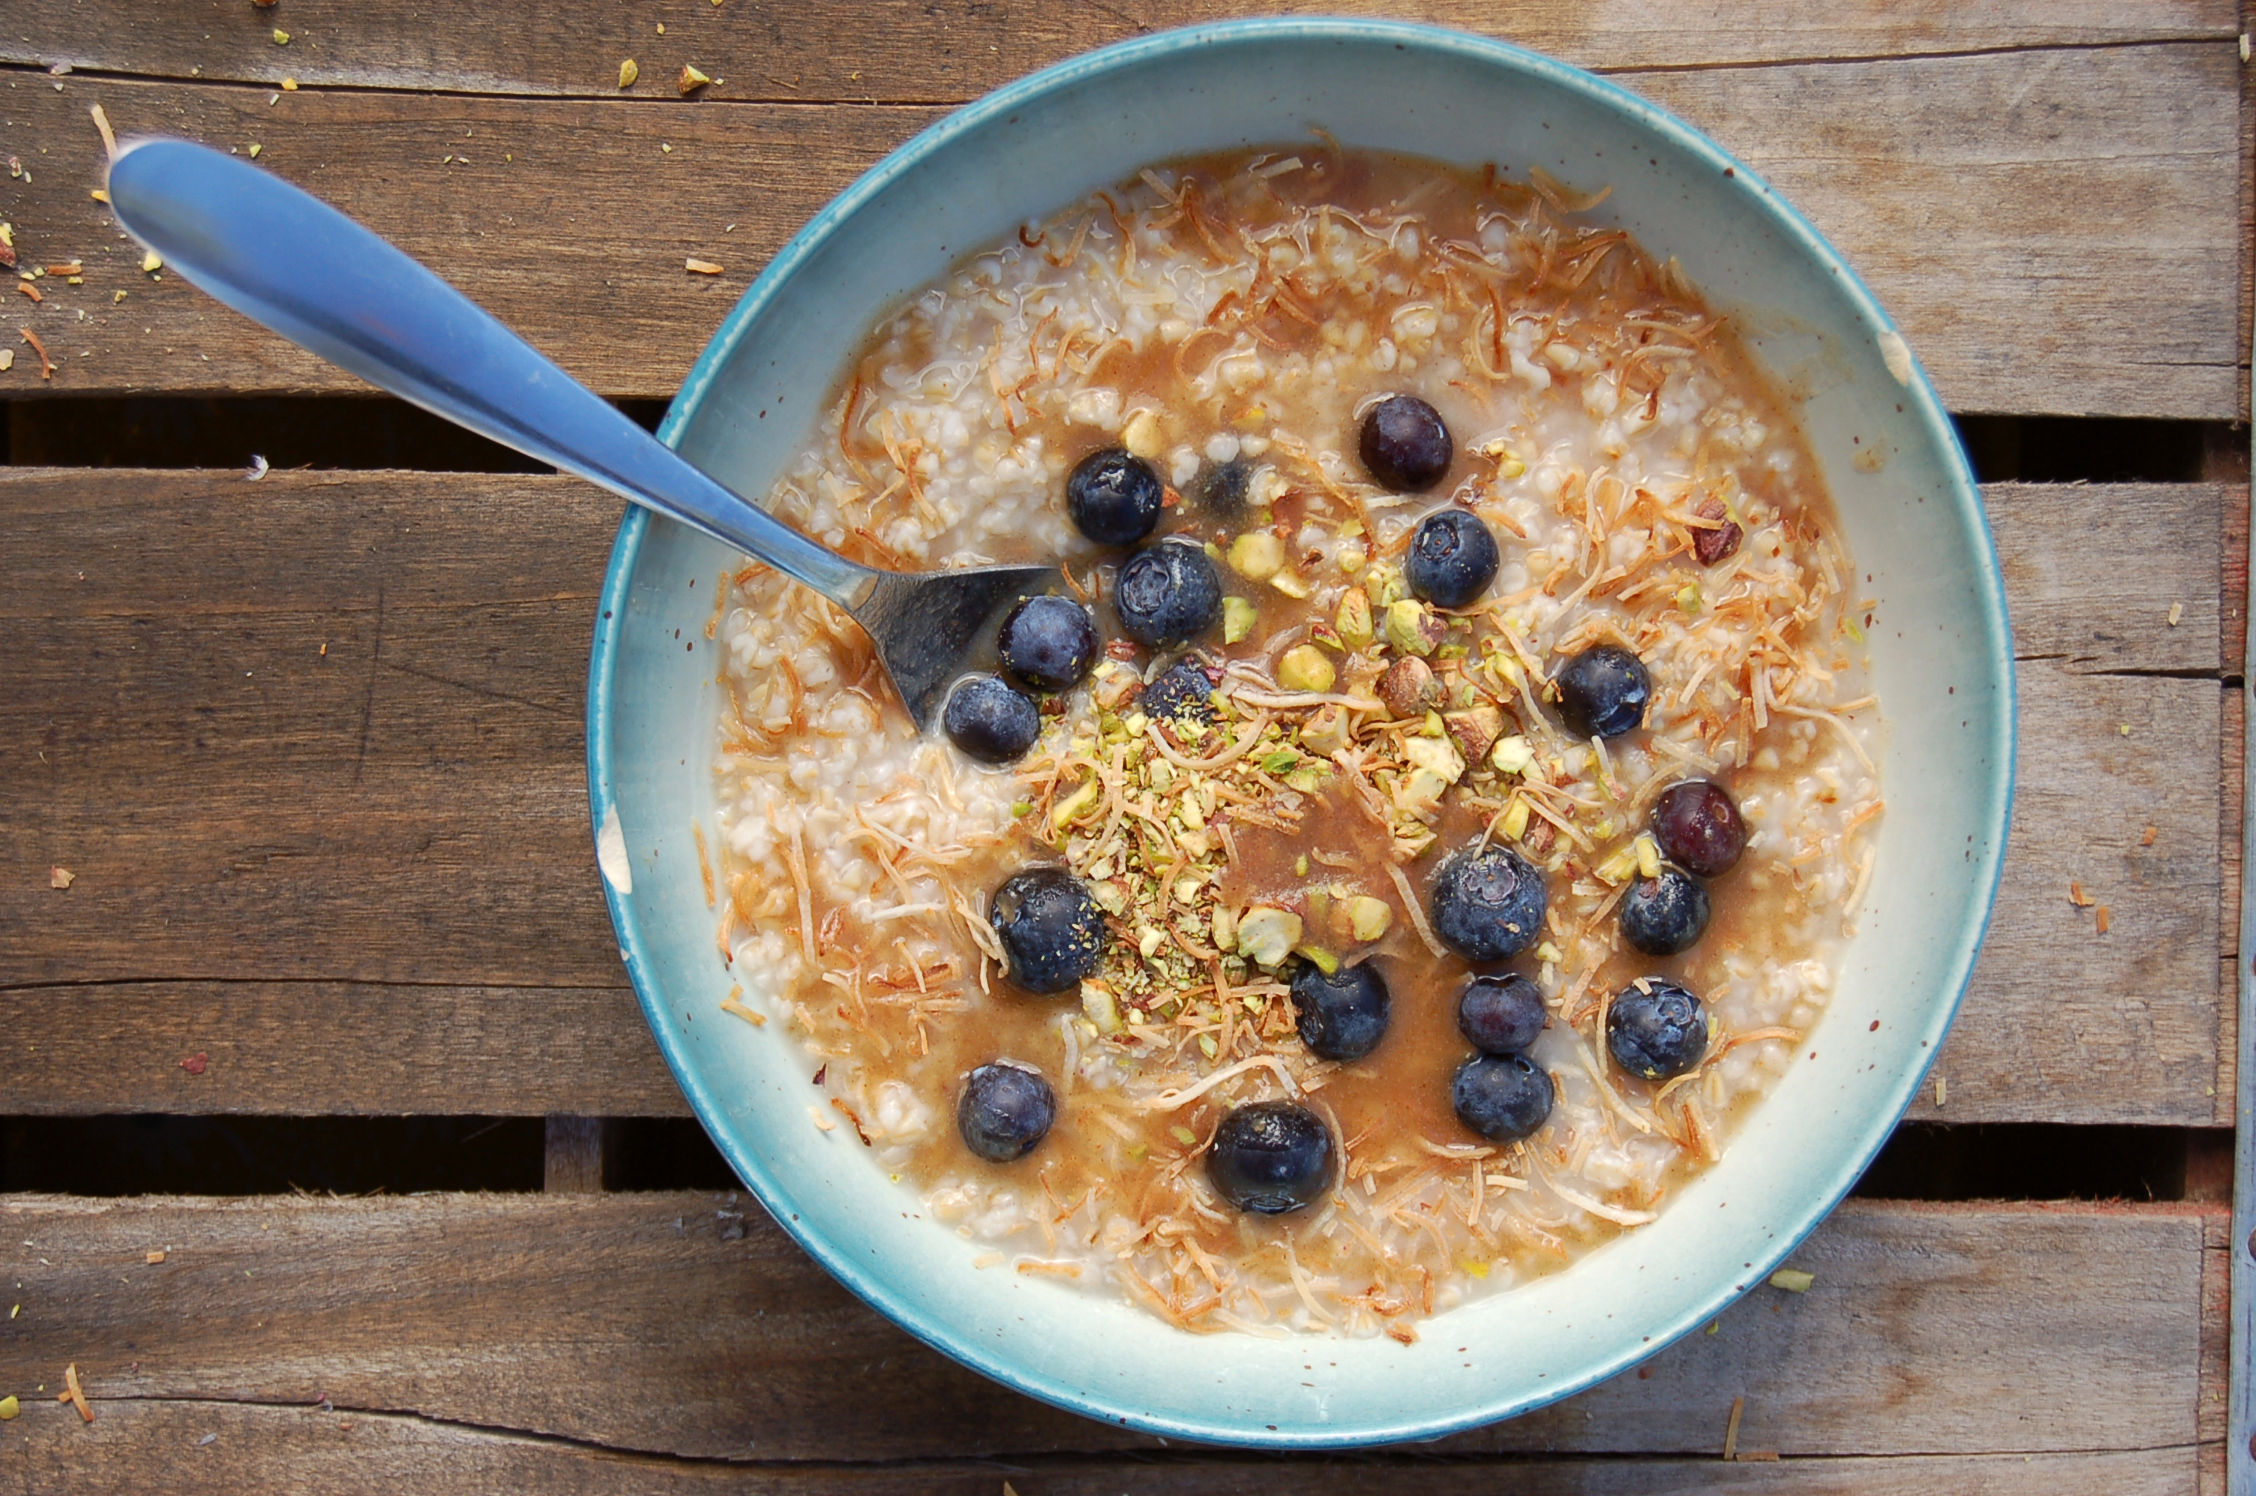 Reversing pre diabetes this guy rocked it overnight steel cut oats no cook overnight steel cut oats with date syrup whole food plant based overnightoatsfullbowlalone overnightoatsfullbowlalone forumfinder Image collections